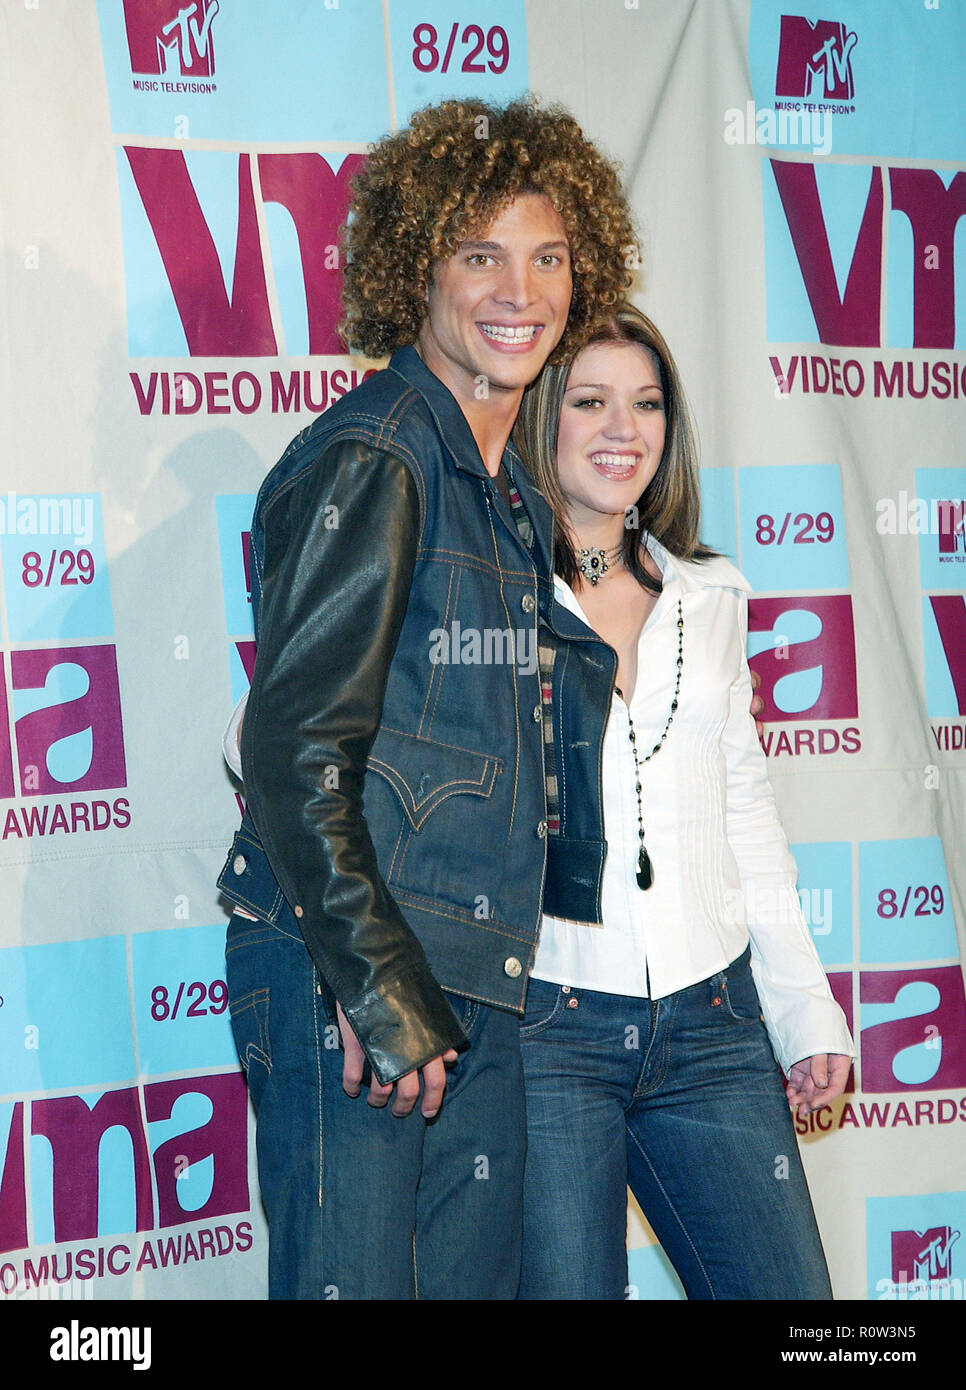 Kelly Clarkson And Justin Guarini Backstage At The MTV Vma Awards Radio Music Hall In New York August 29 2002